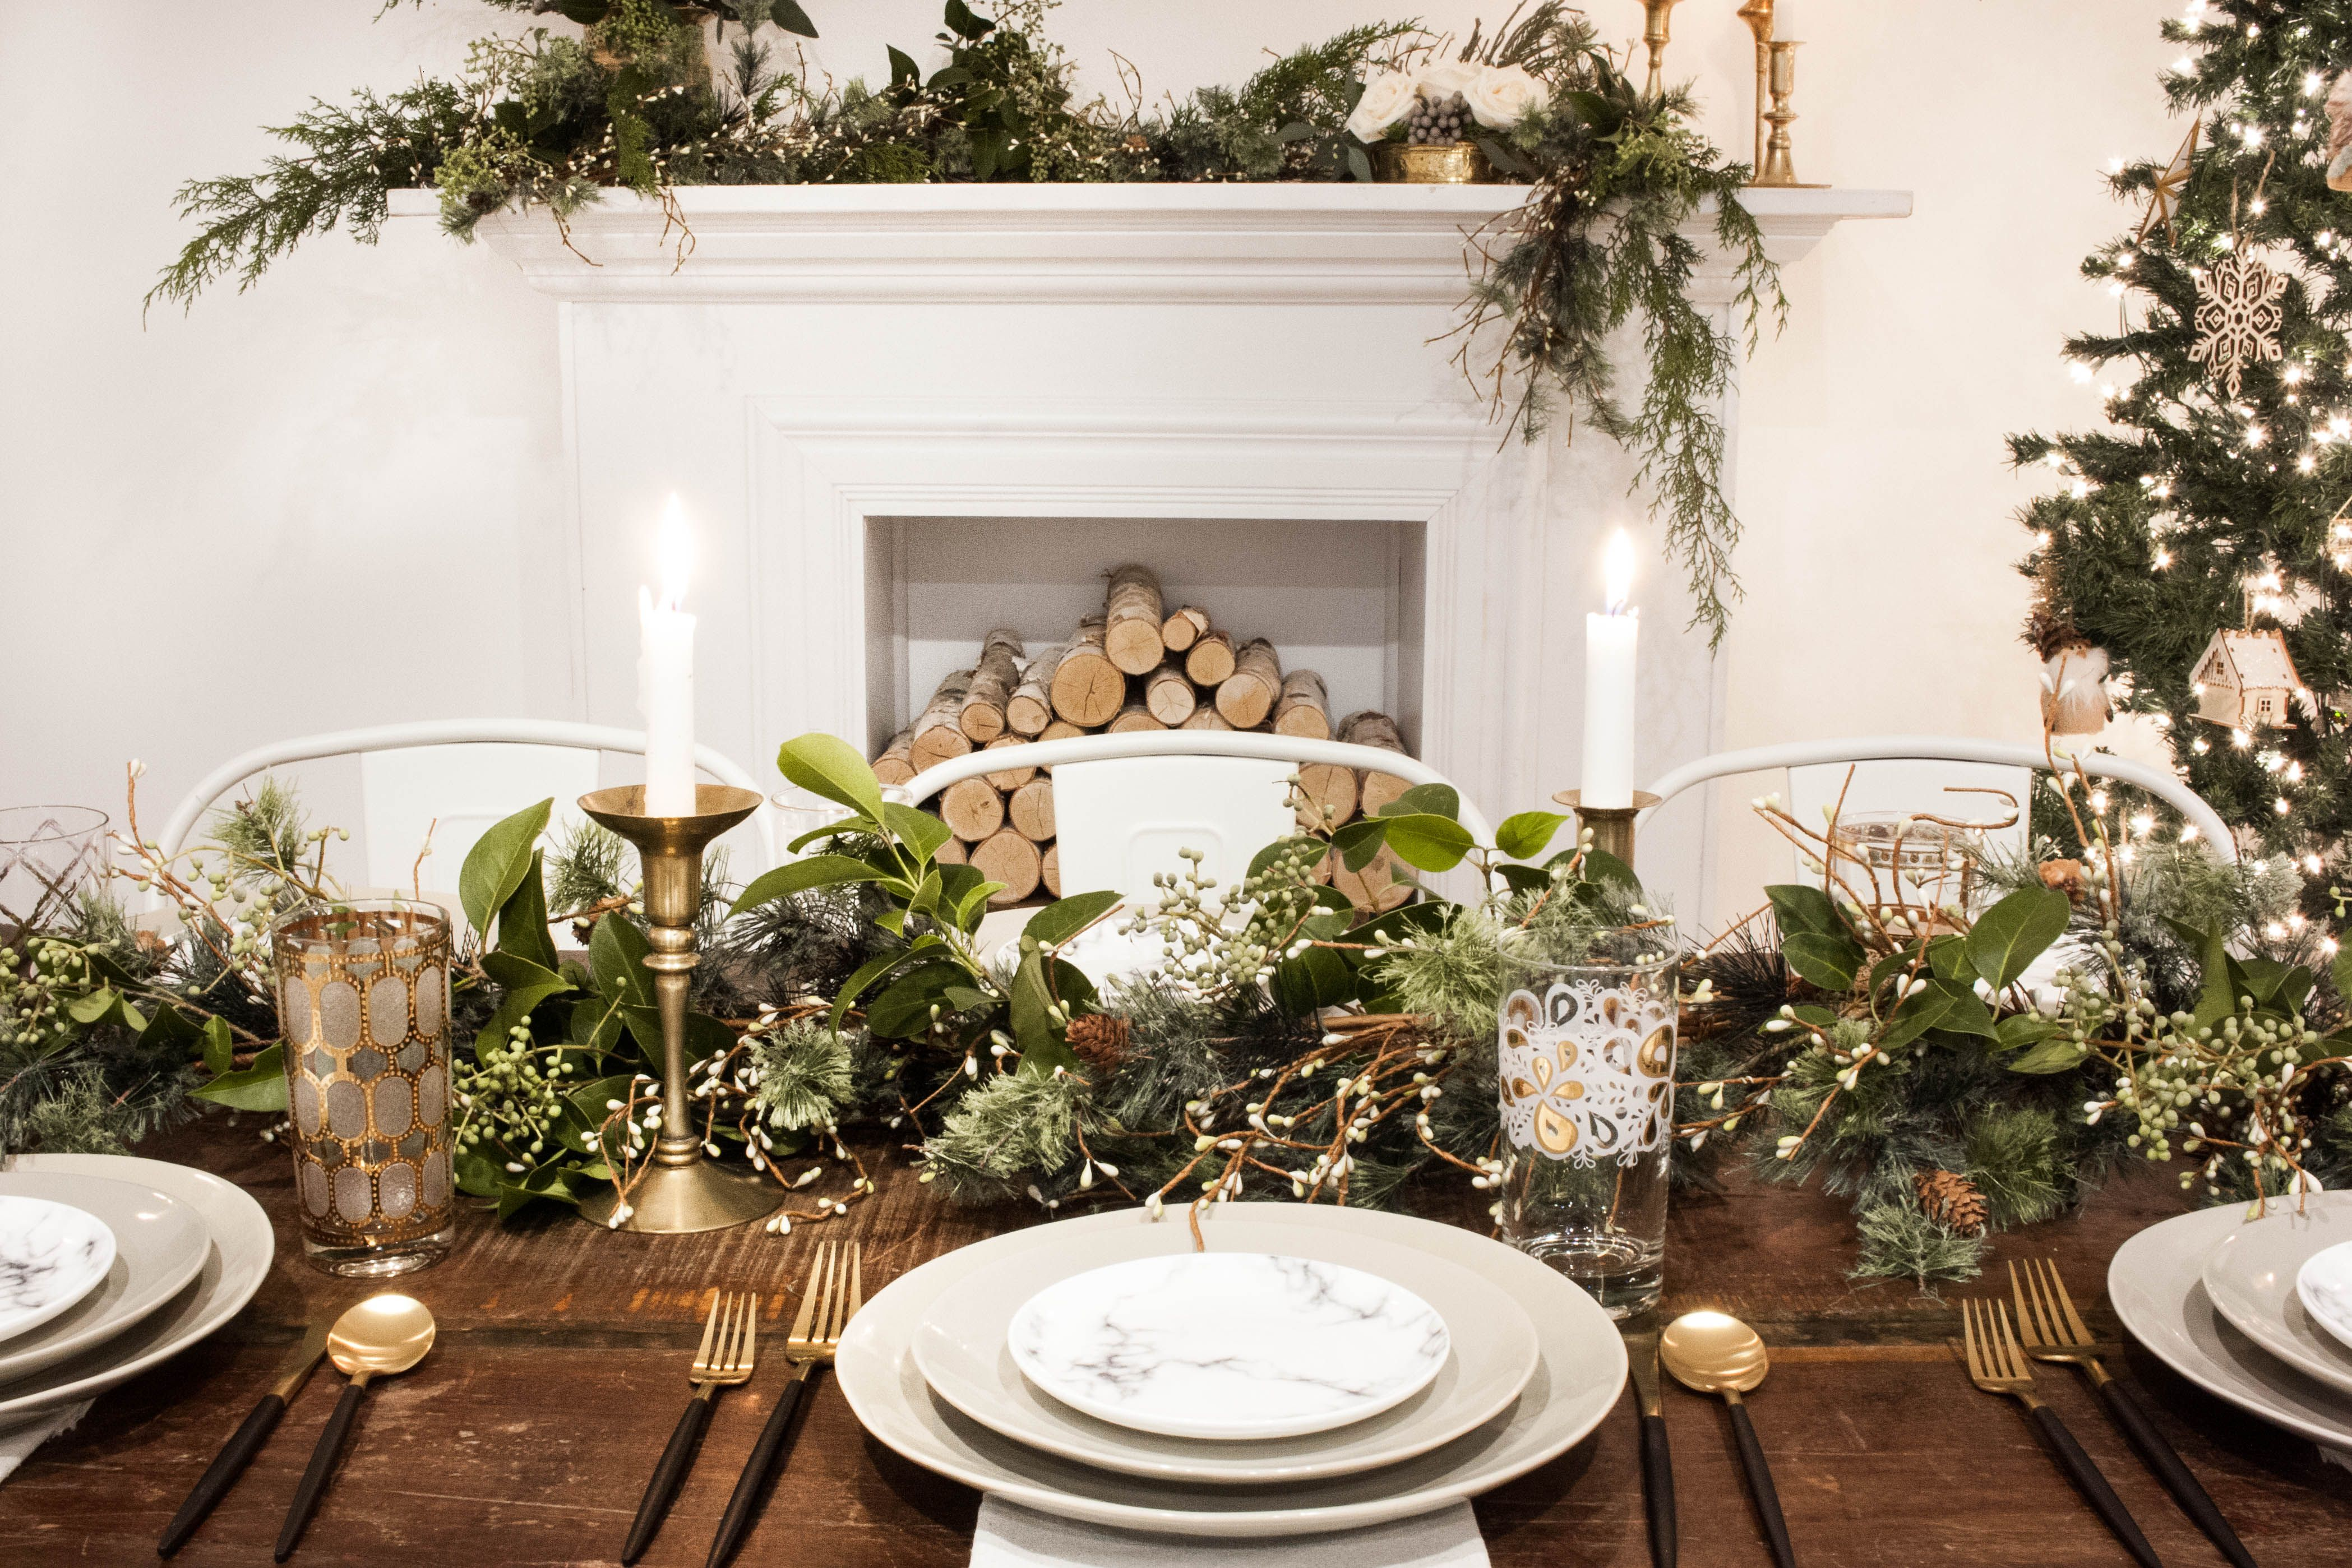 Modern Winter Wonderland Corporate Holiday Party Christmas Dinne Christmas Party Decorations Table Corporate Christmas Party Decorations Mid Winter Christmas